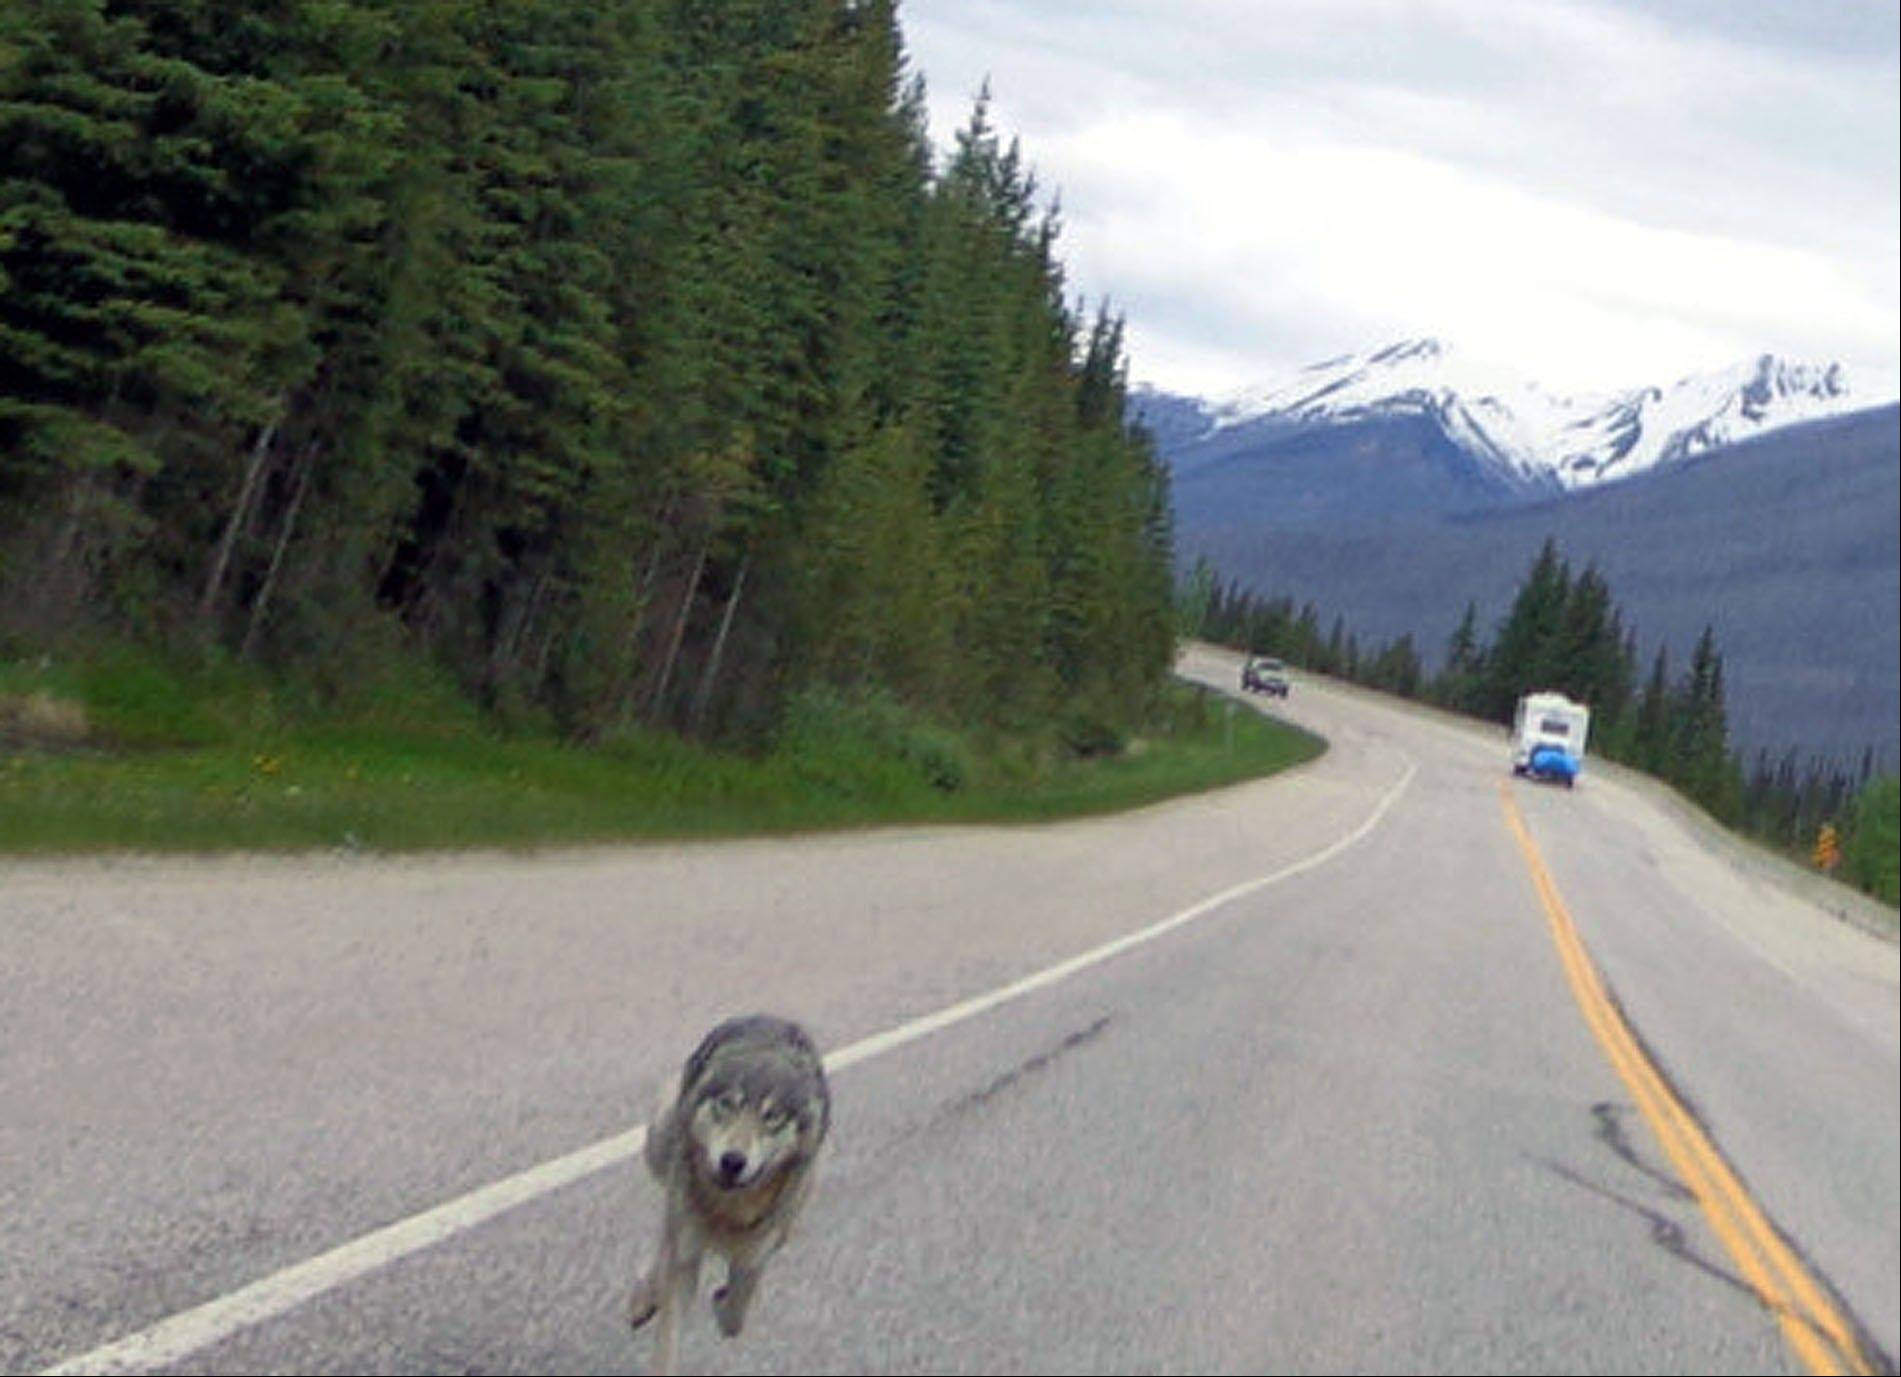 A wolf chases Tim Bartlett's motorcycle down Highway 93 in Kootenay National Park highway in British Columbia, Canada.